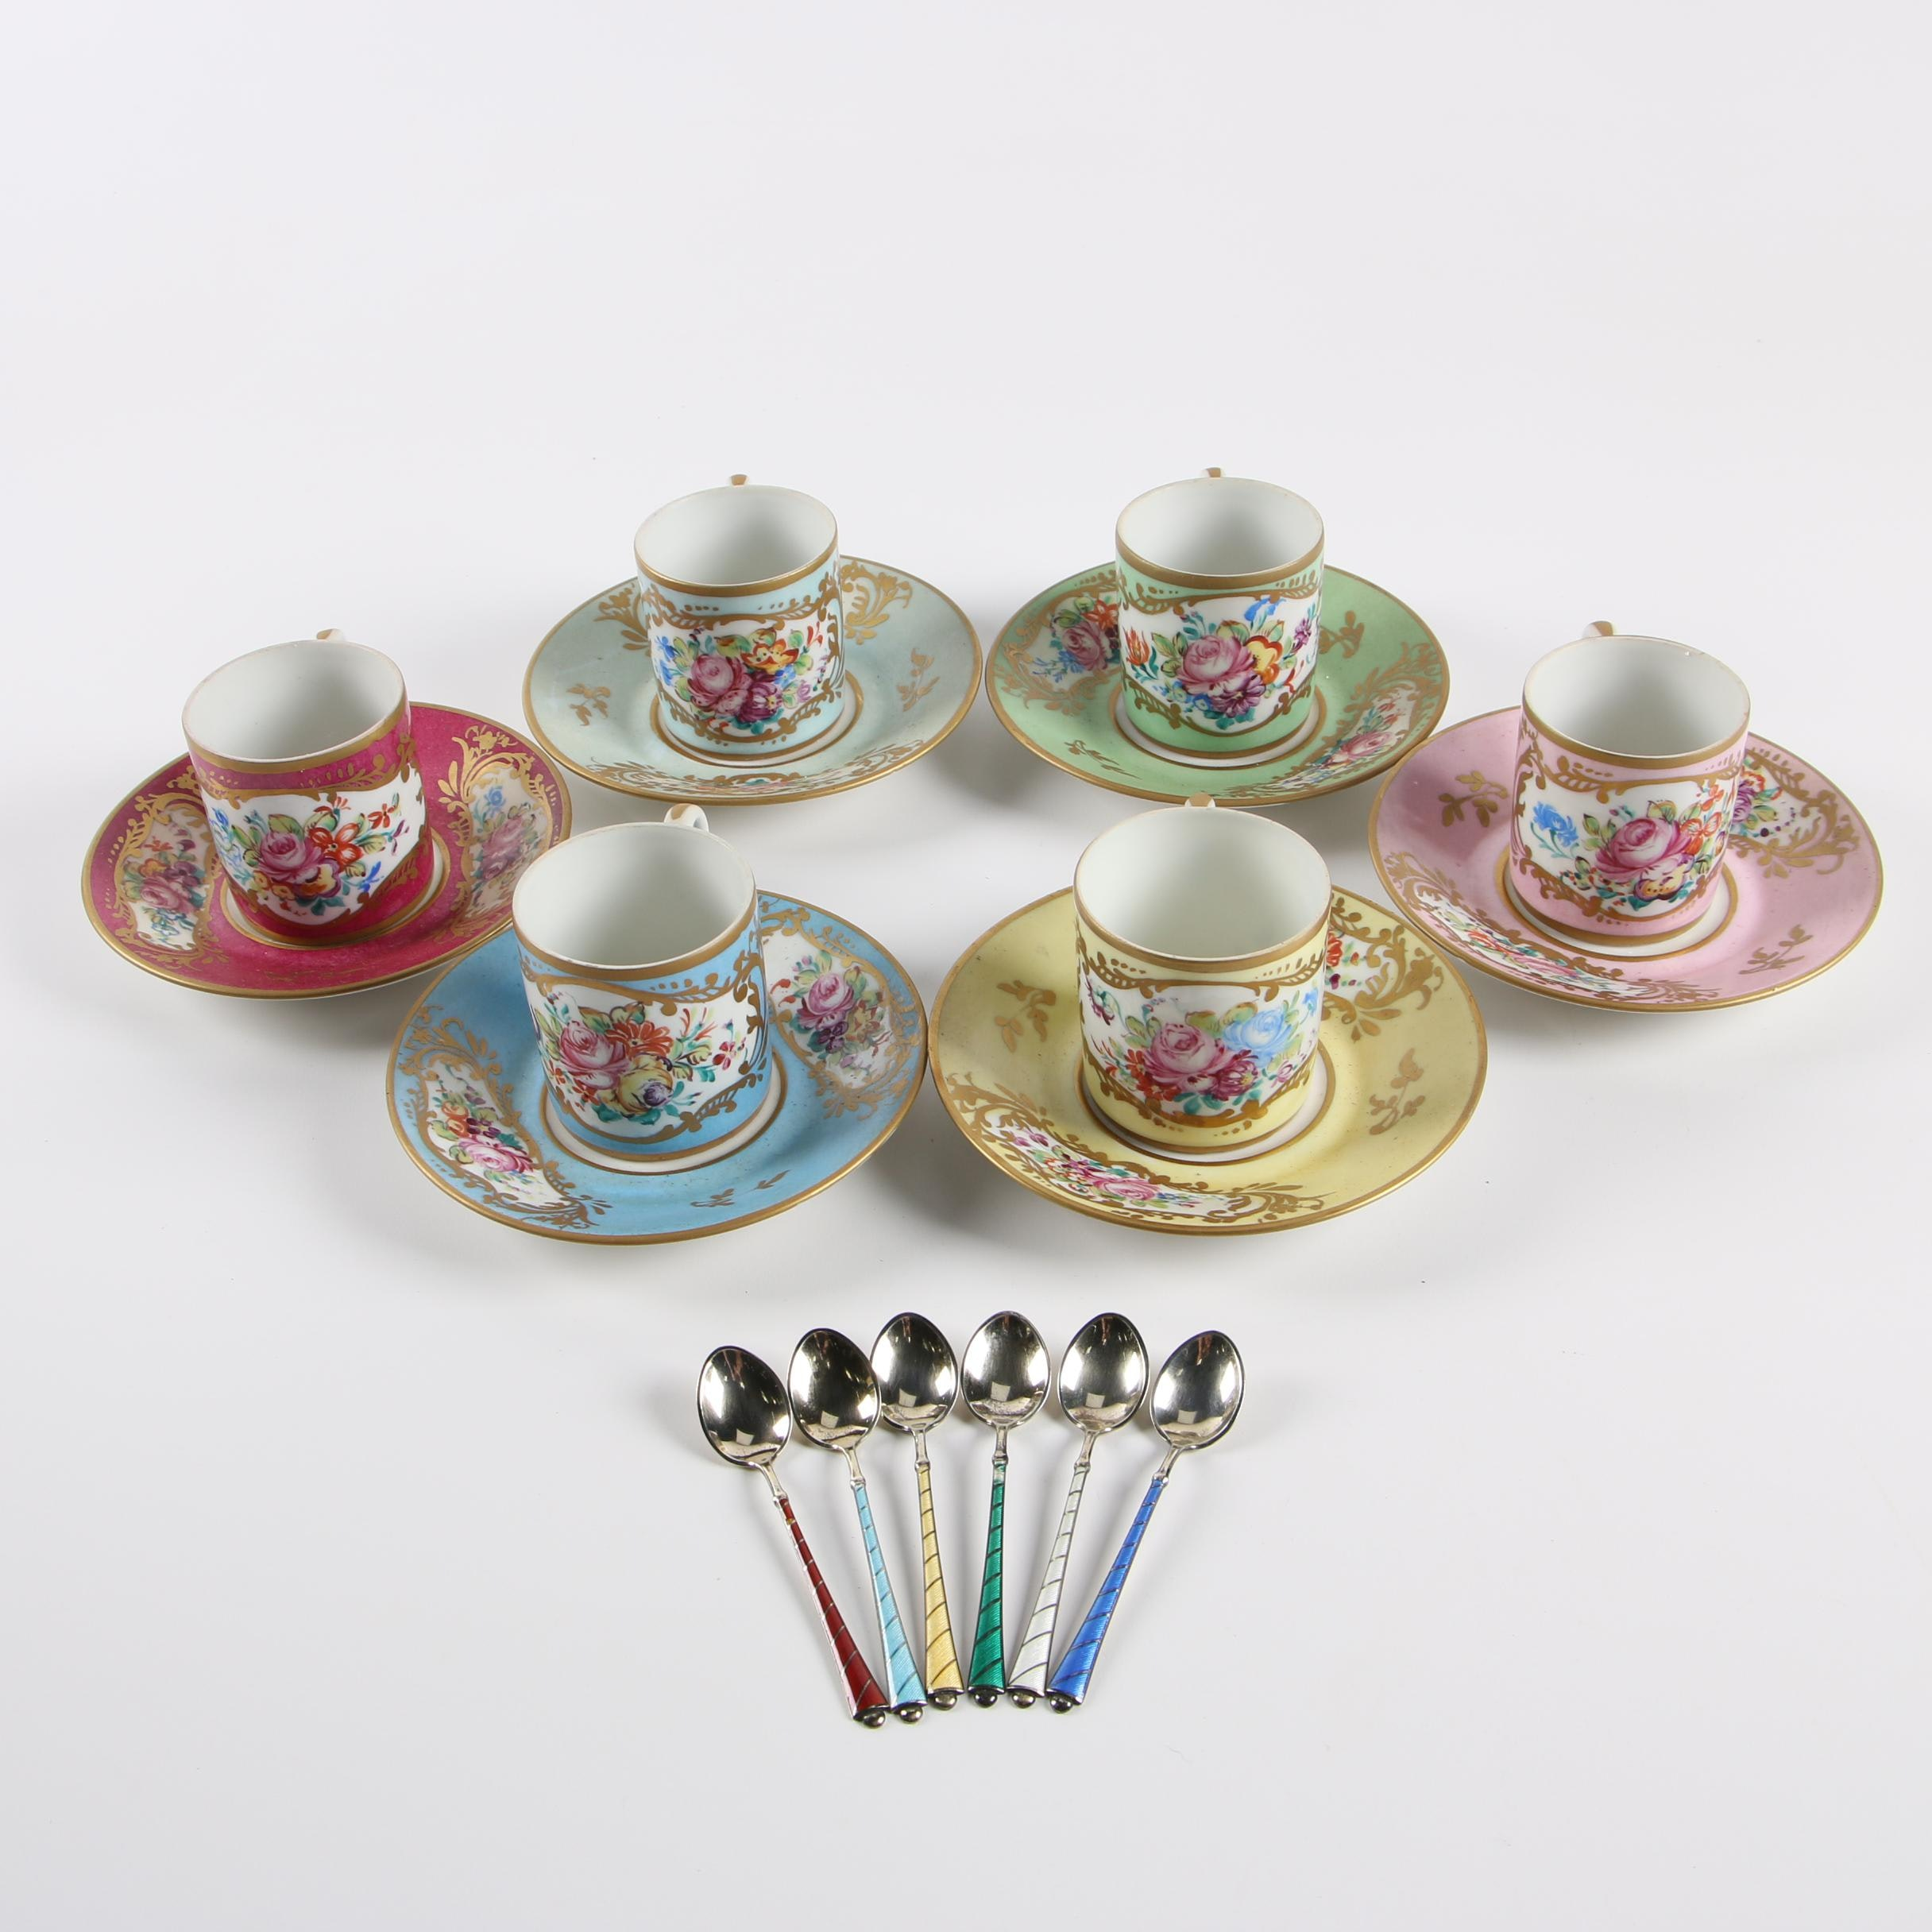 Limoges Sevres Style Demitasse Cup Sets with Ela Danish Enameled Sterling Spoons